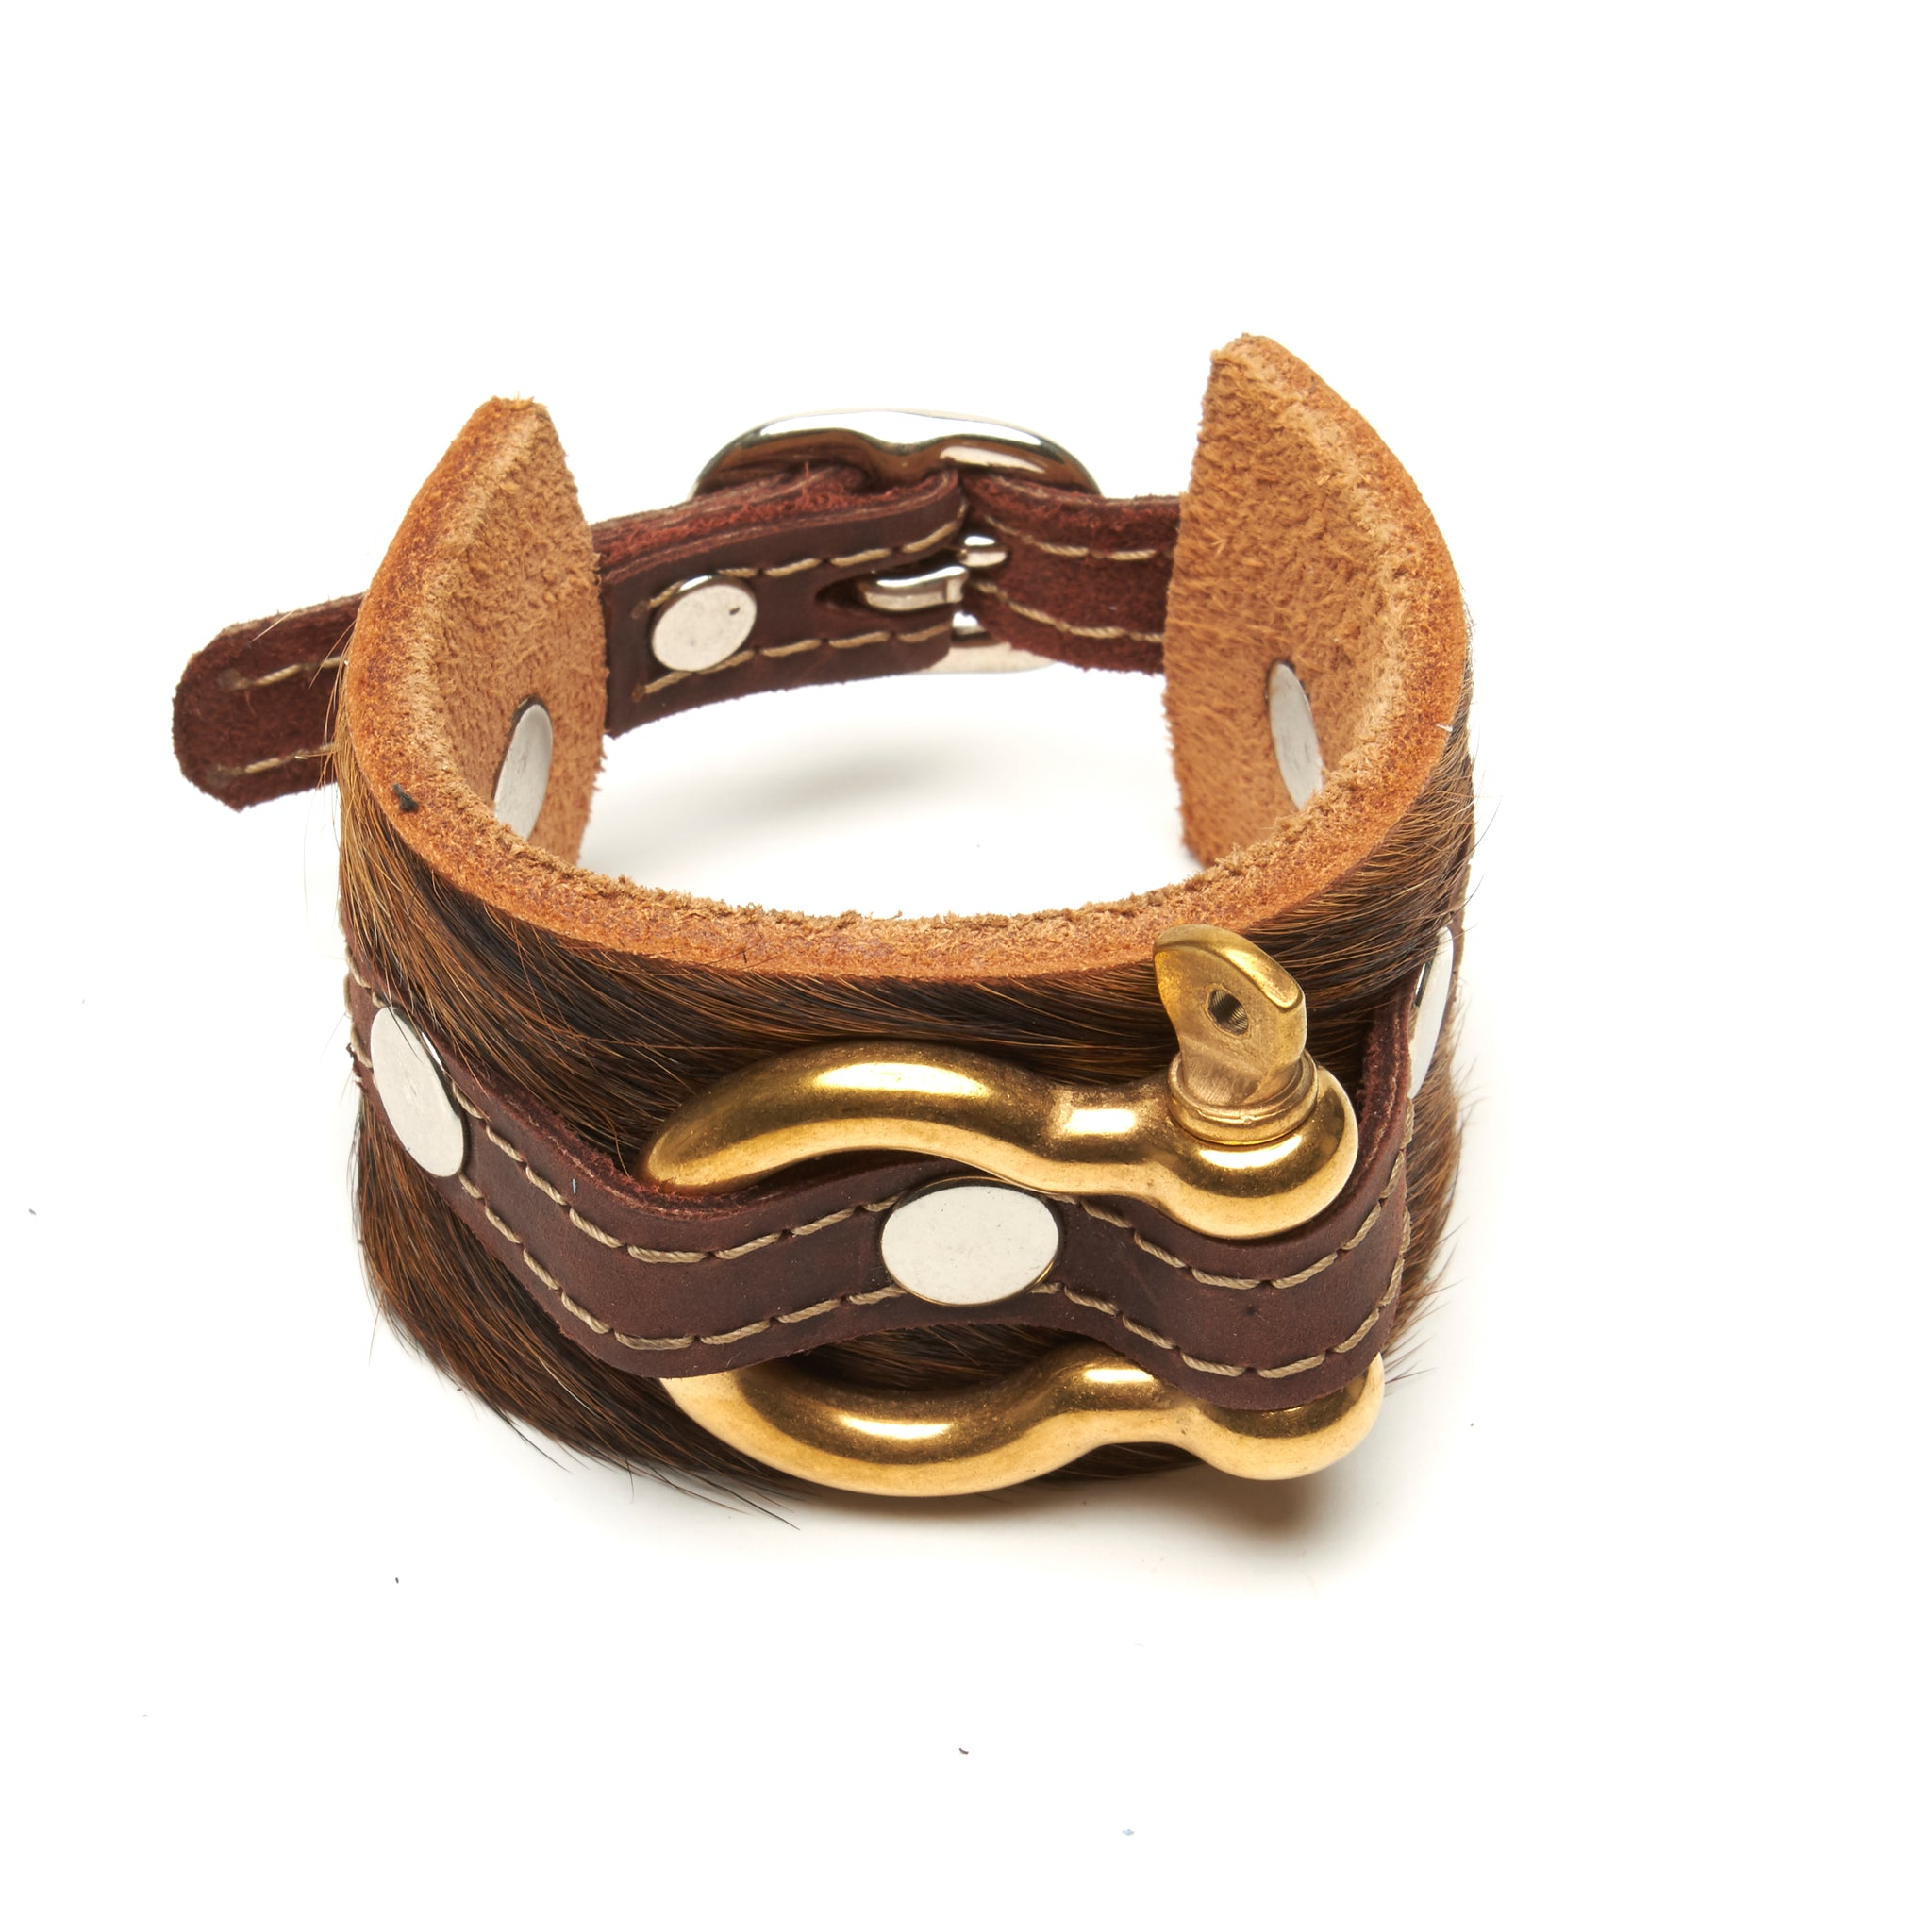 Shackle Latigo cuff Hair On Cowhide by NYET Jewelry.